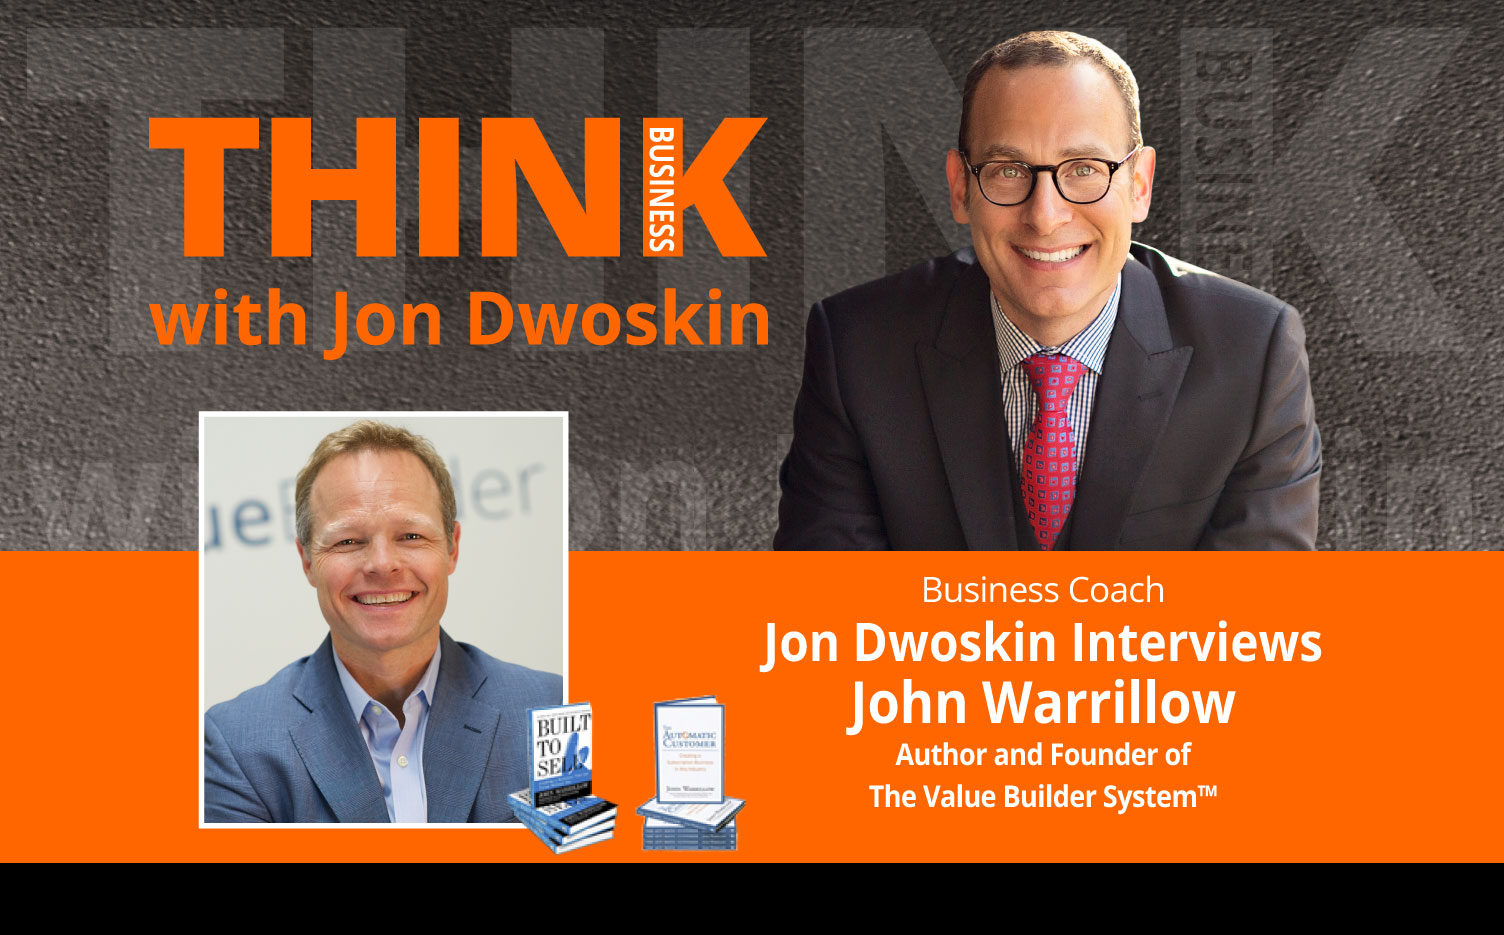 THINK Business Podcast: Jon Dwoskin Interviews John Warrillow, Author and Founder of The Value Builder System™